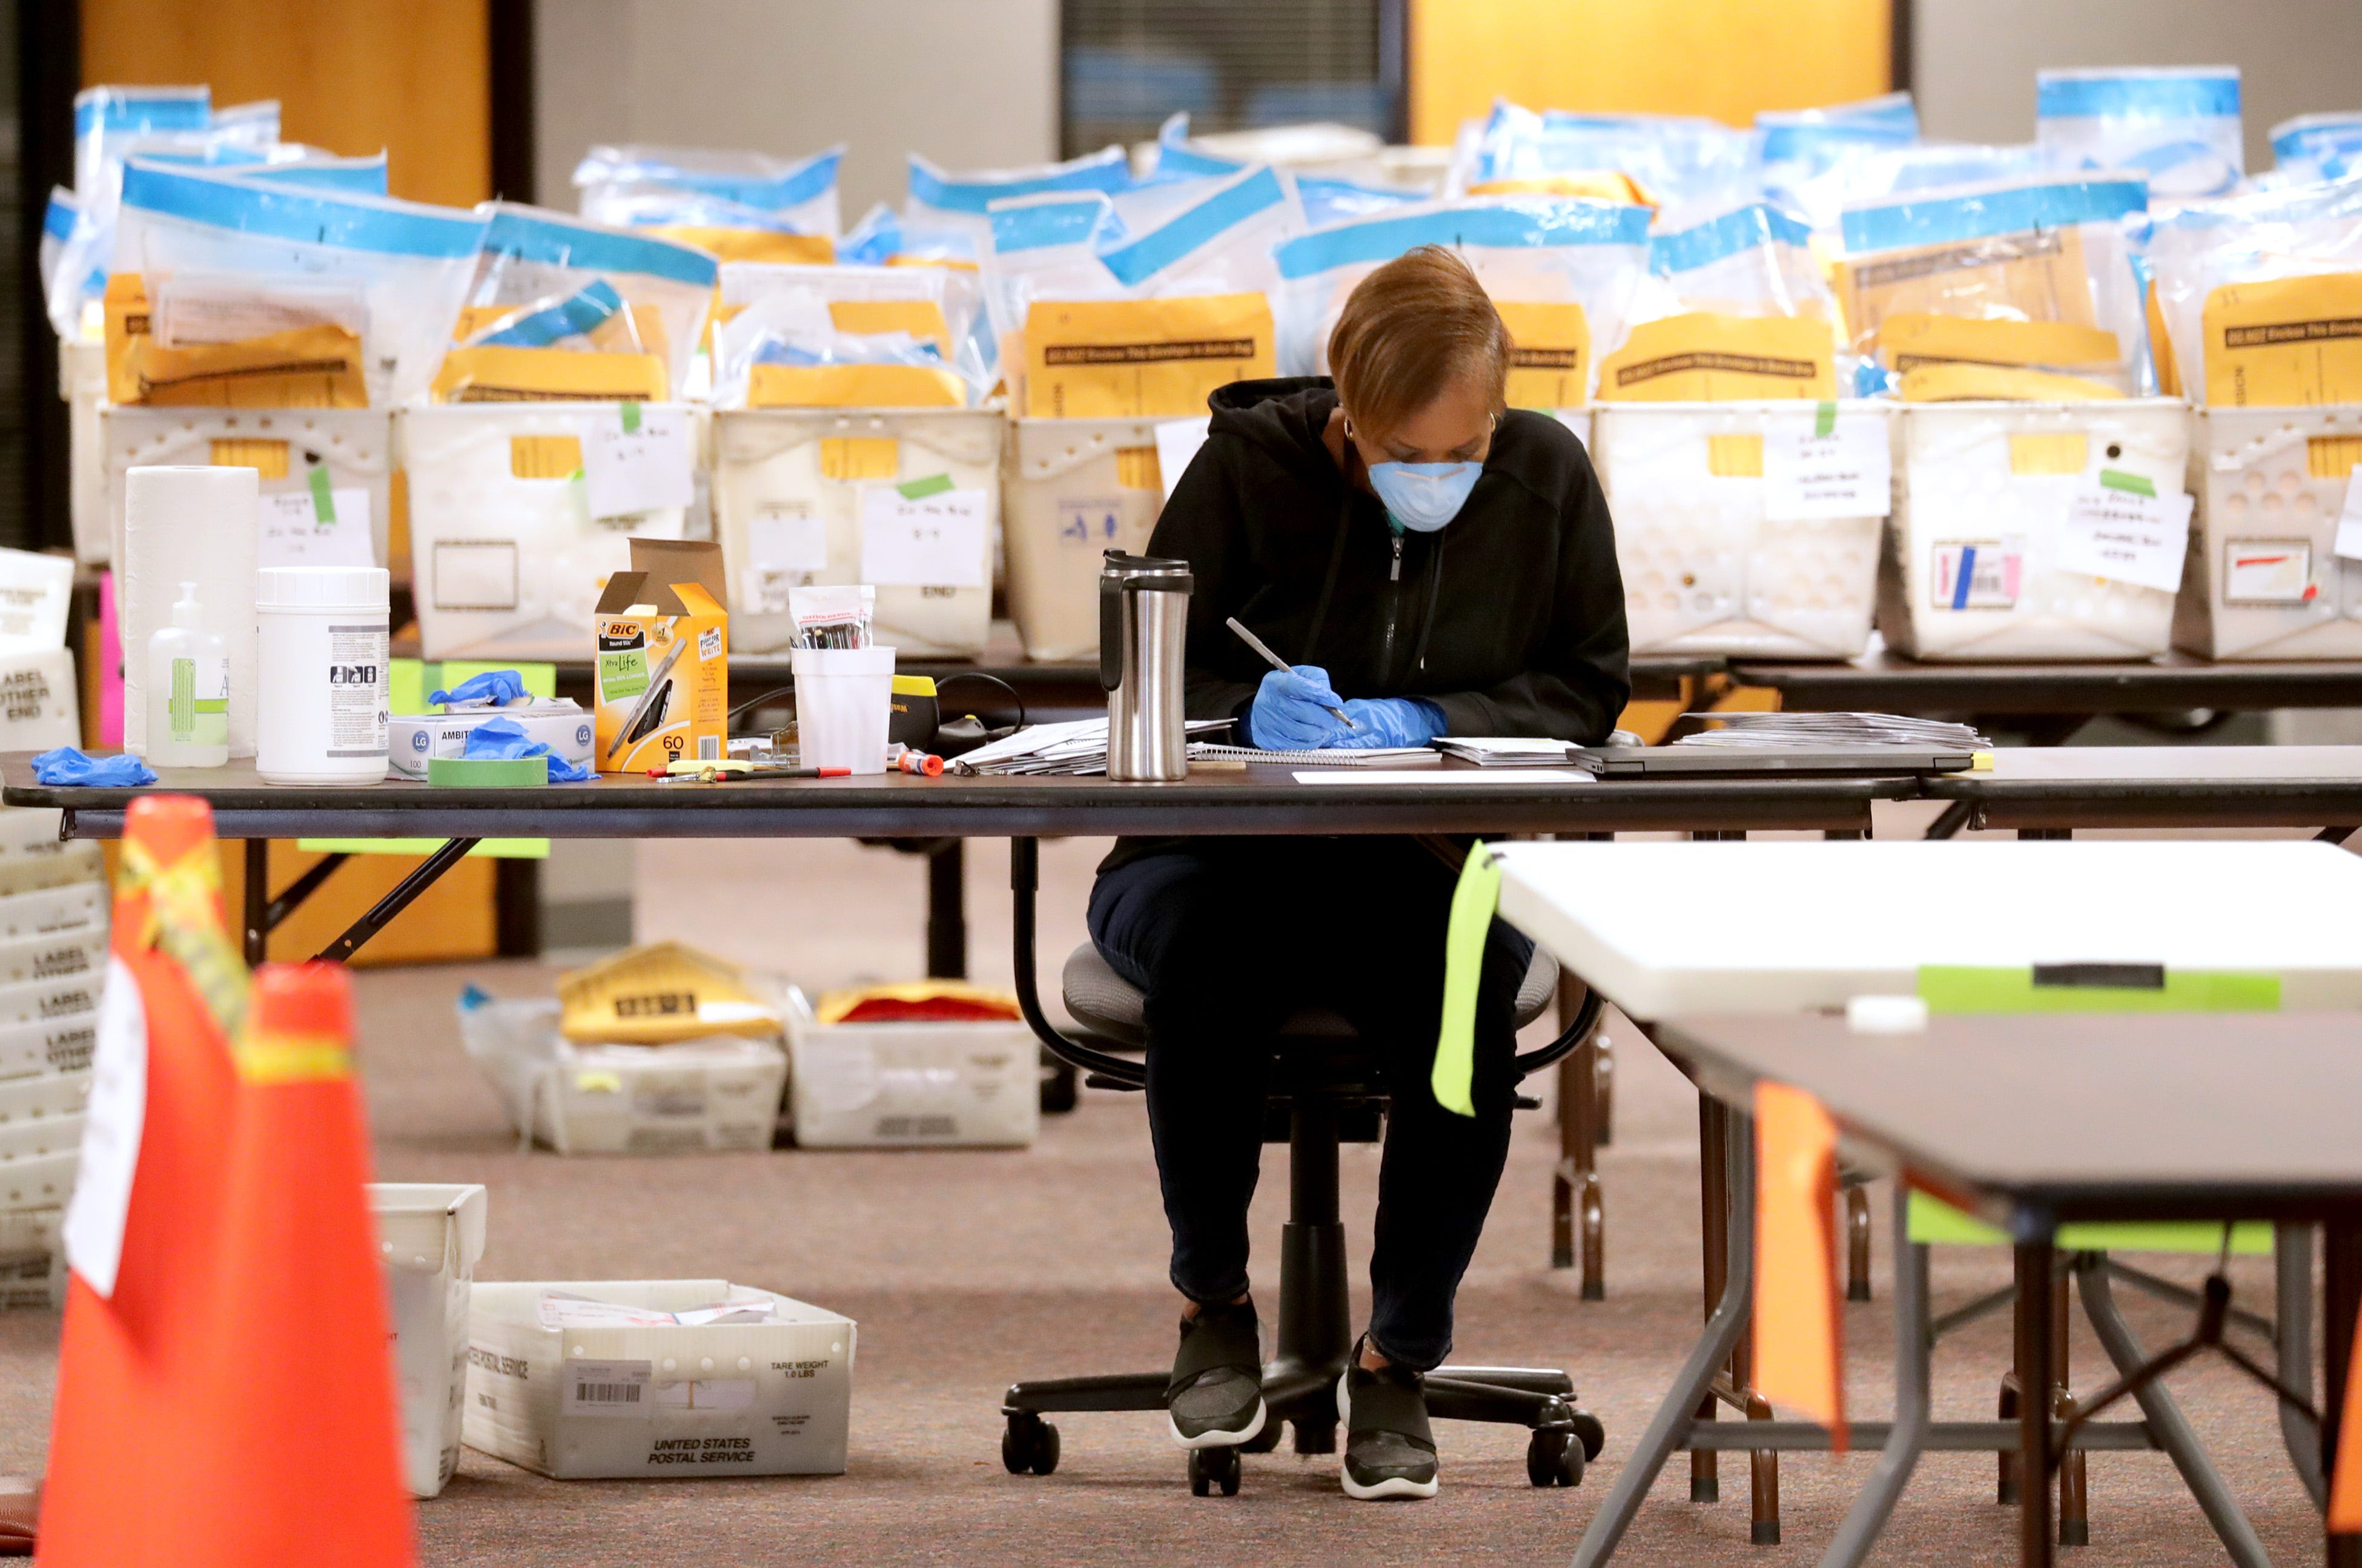 Stephanie Rushing, an election service coordinator with the City of Milwaukee Election Commission, counts ballots as workers were processing absentee ballots cast during the April primary on April 13, 2020 in Milwaukee.